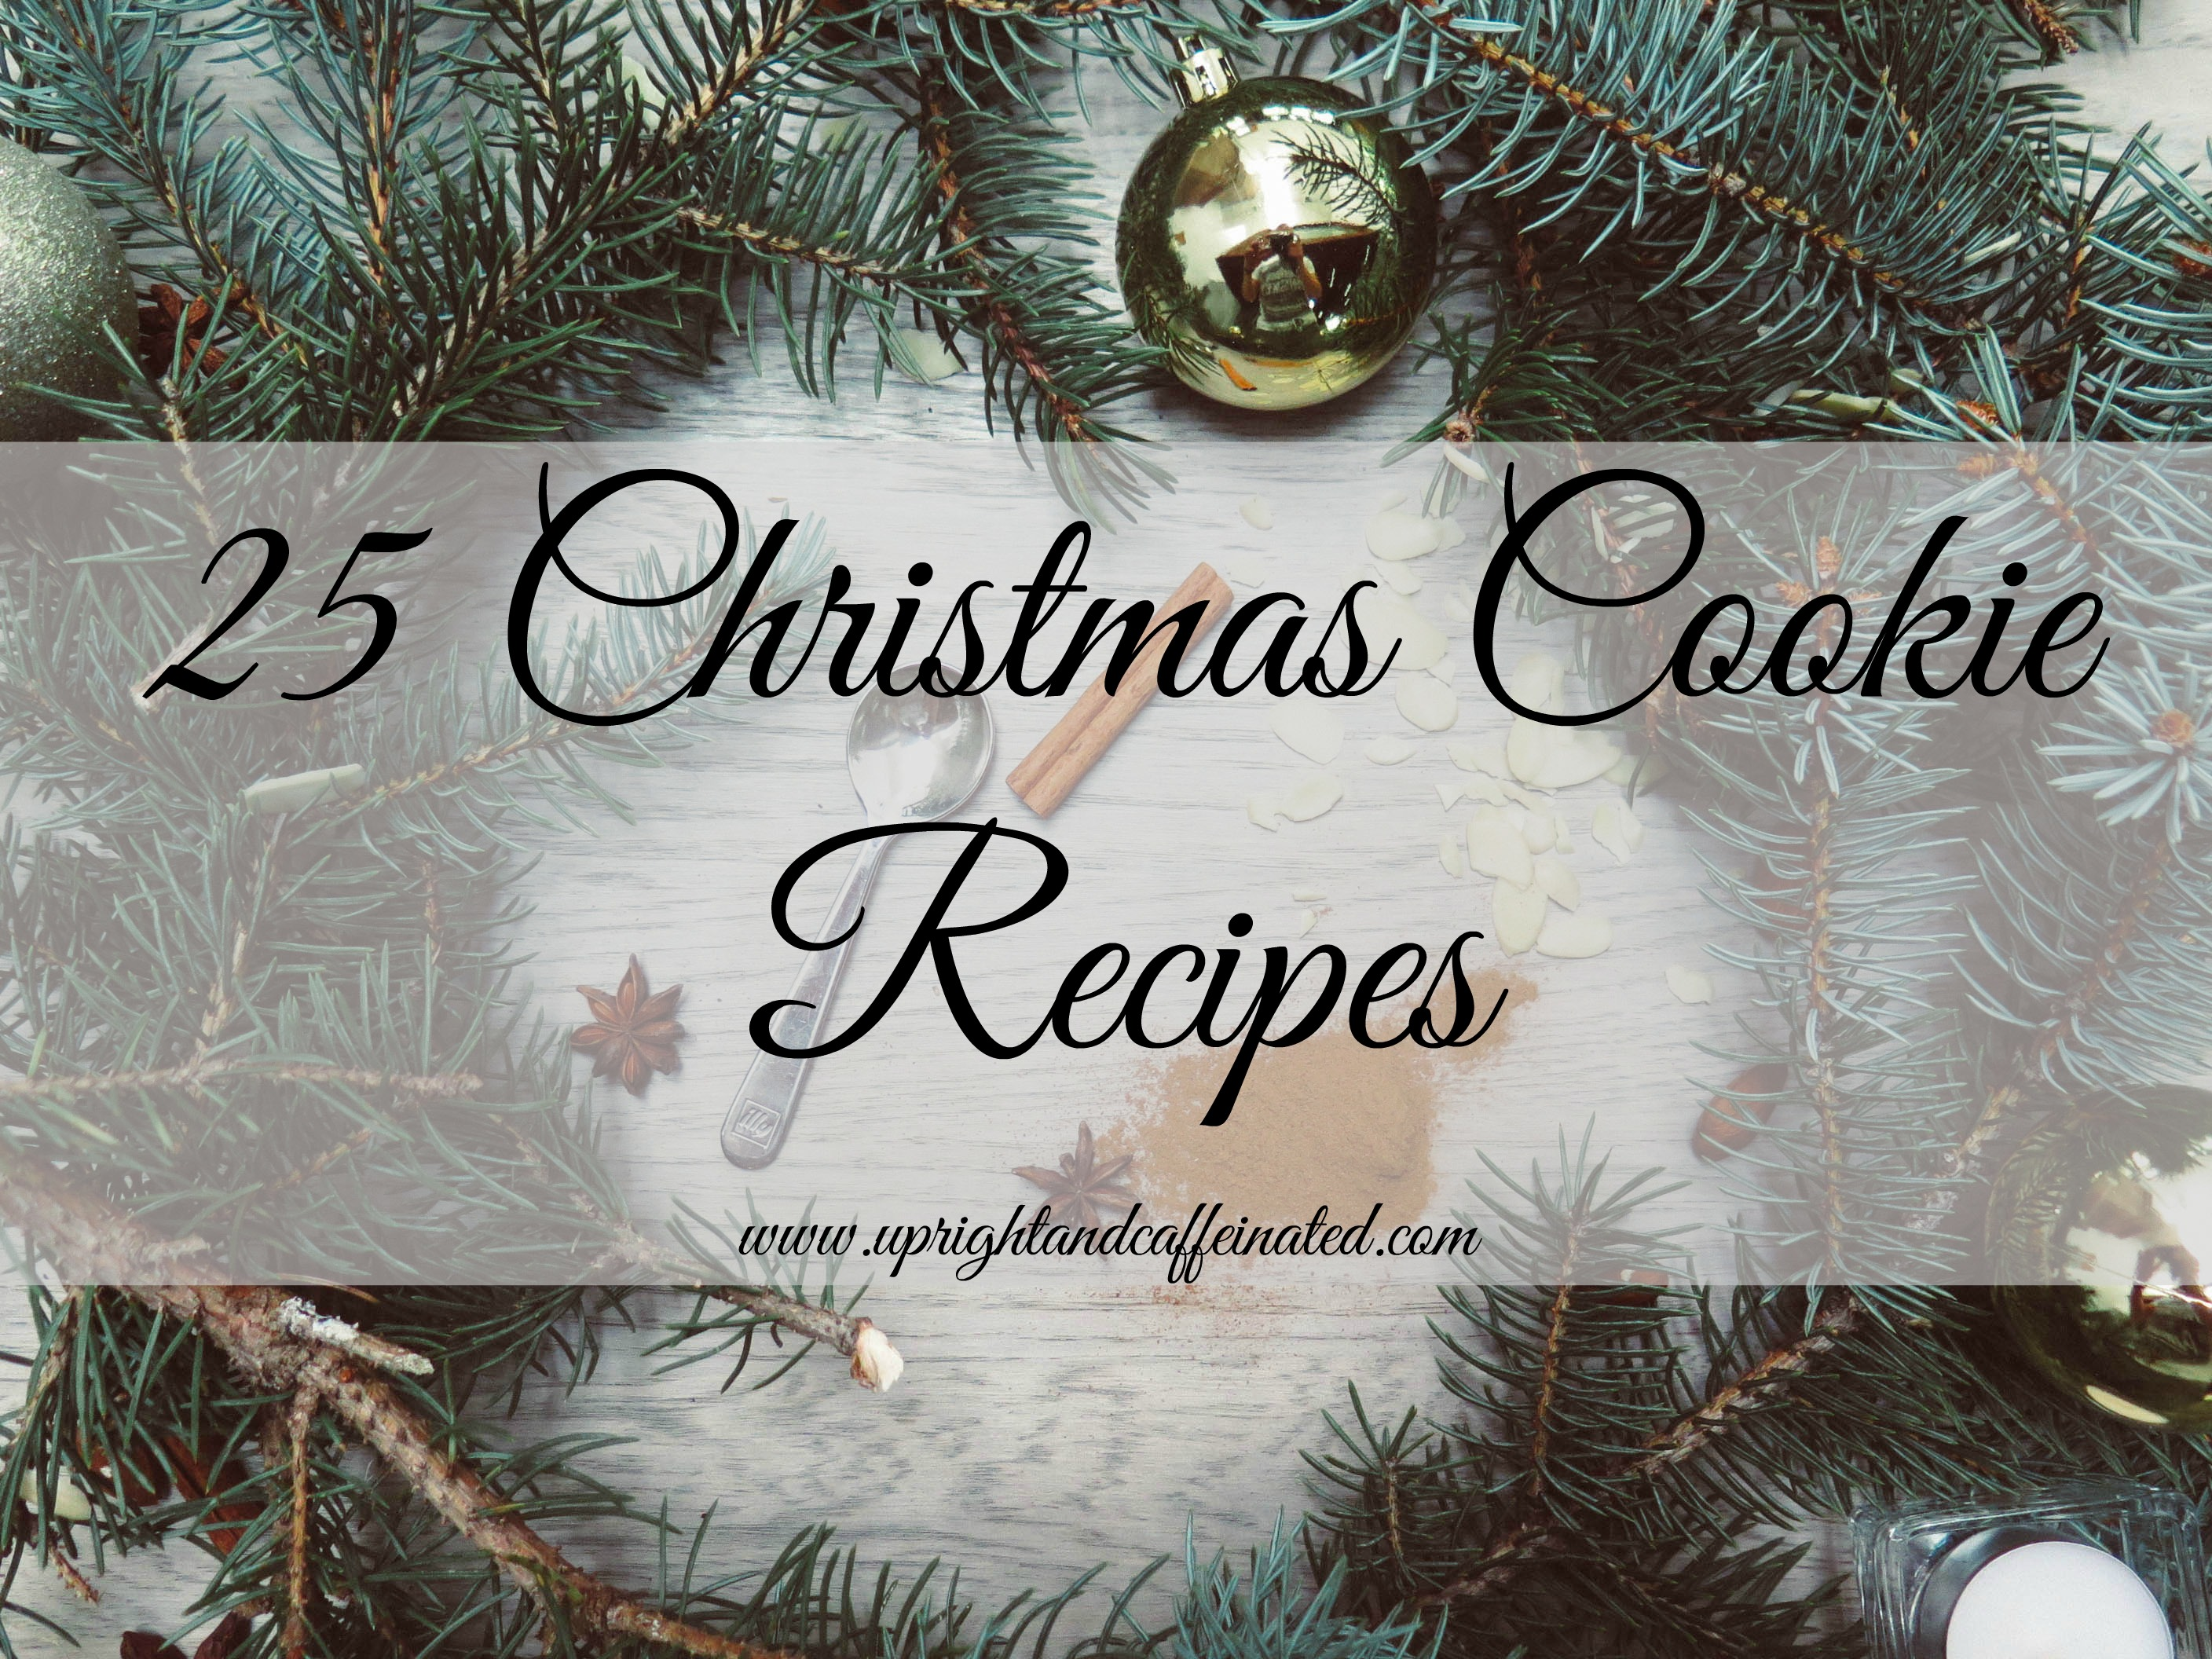 25 of the BEST Christmas Cookie Recipes on the internet! Upright and Caffeinated